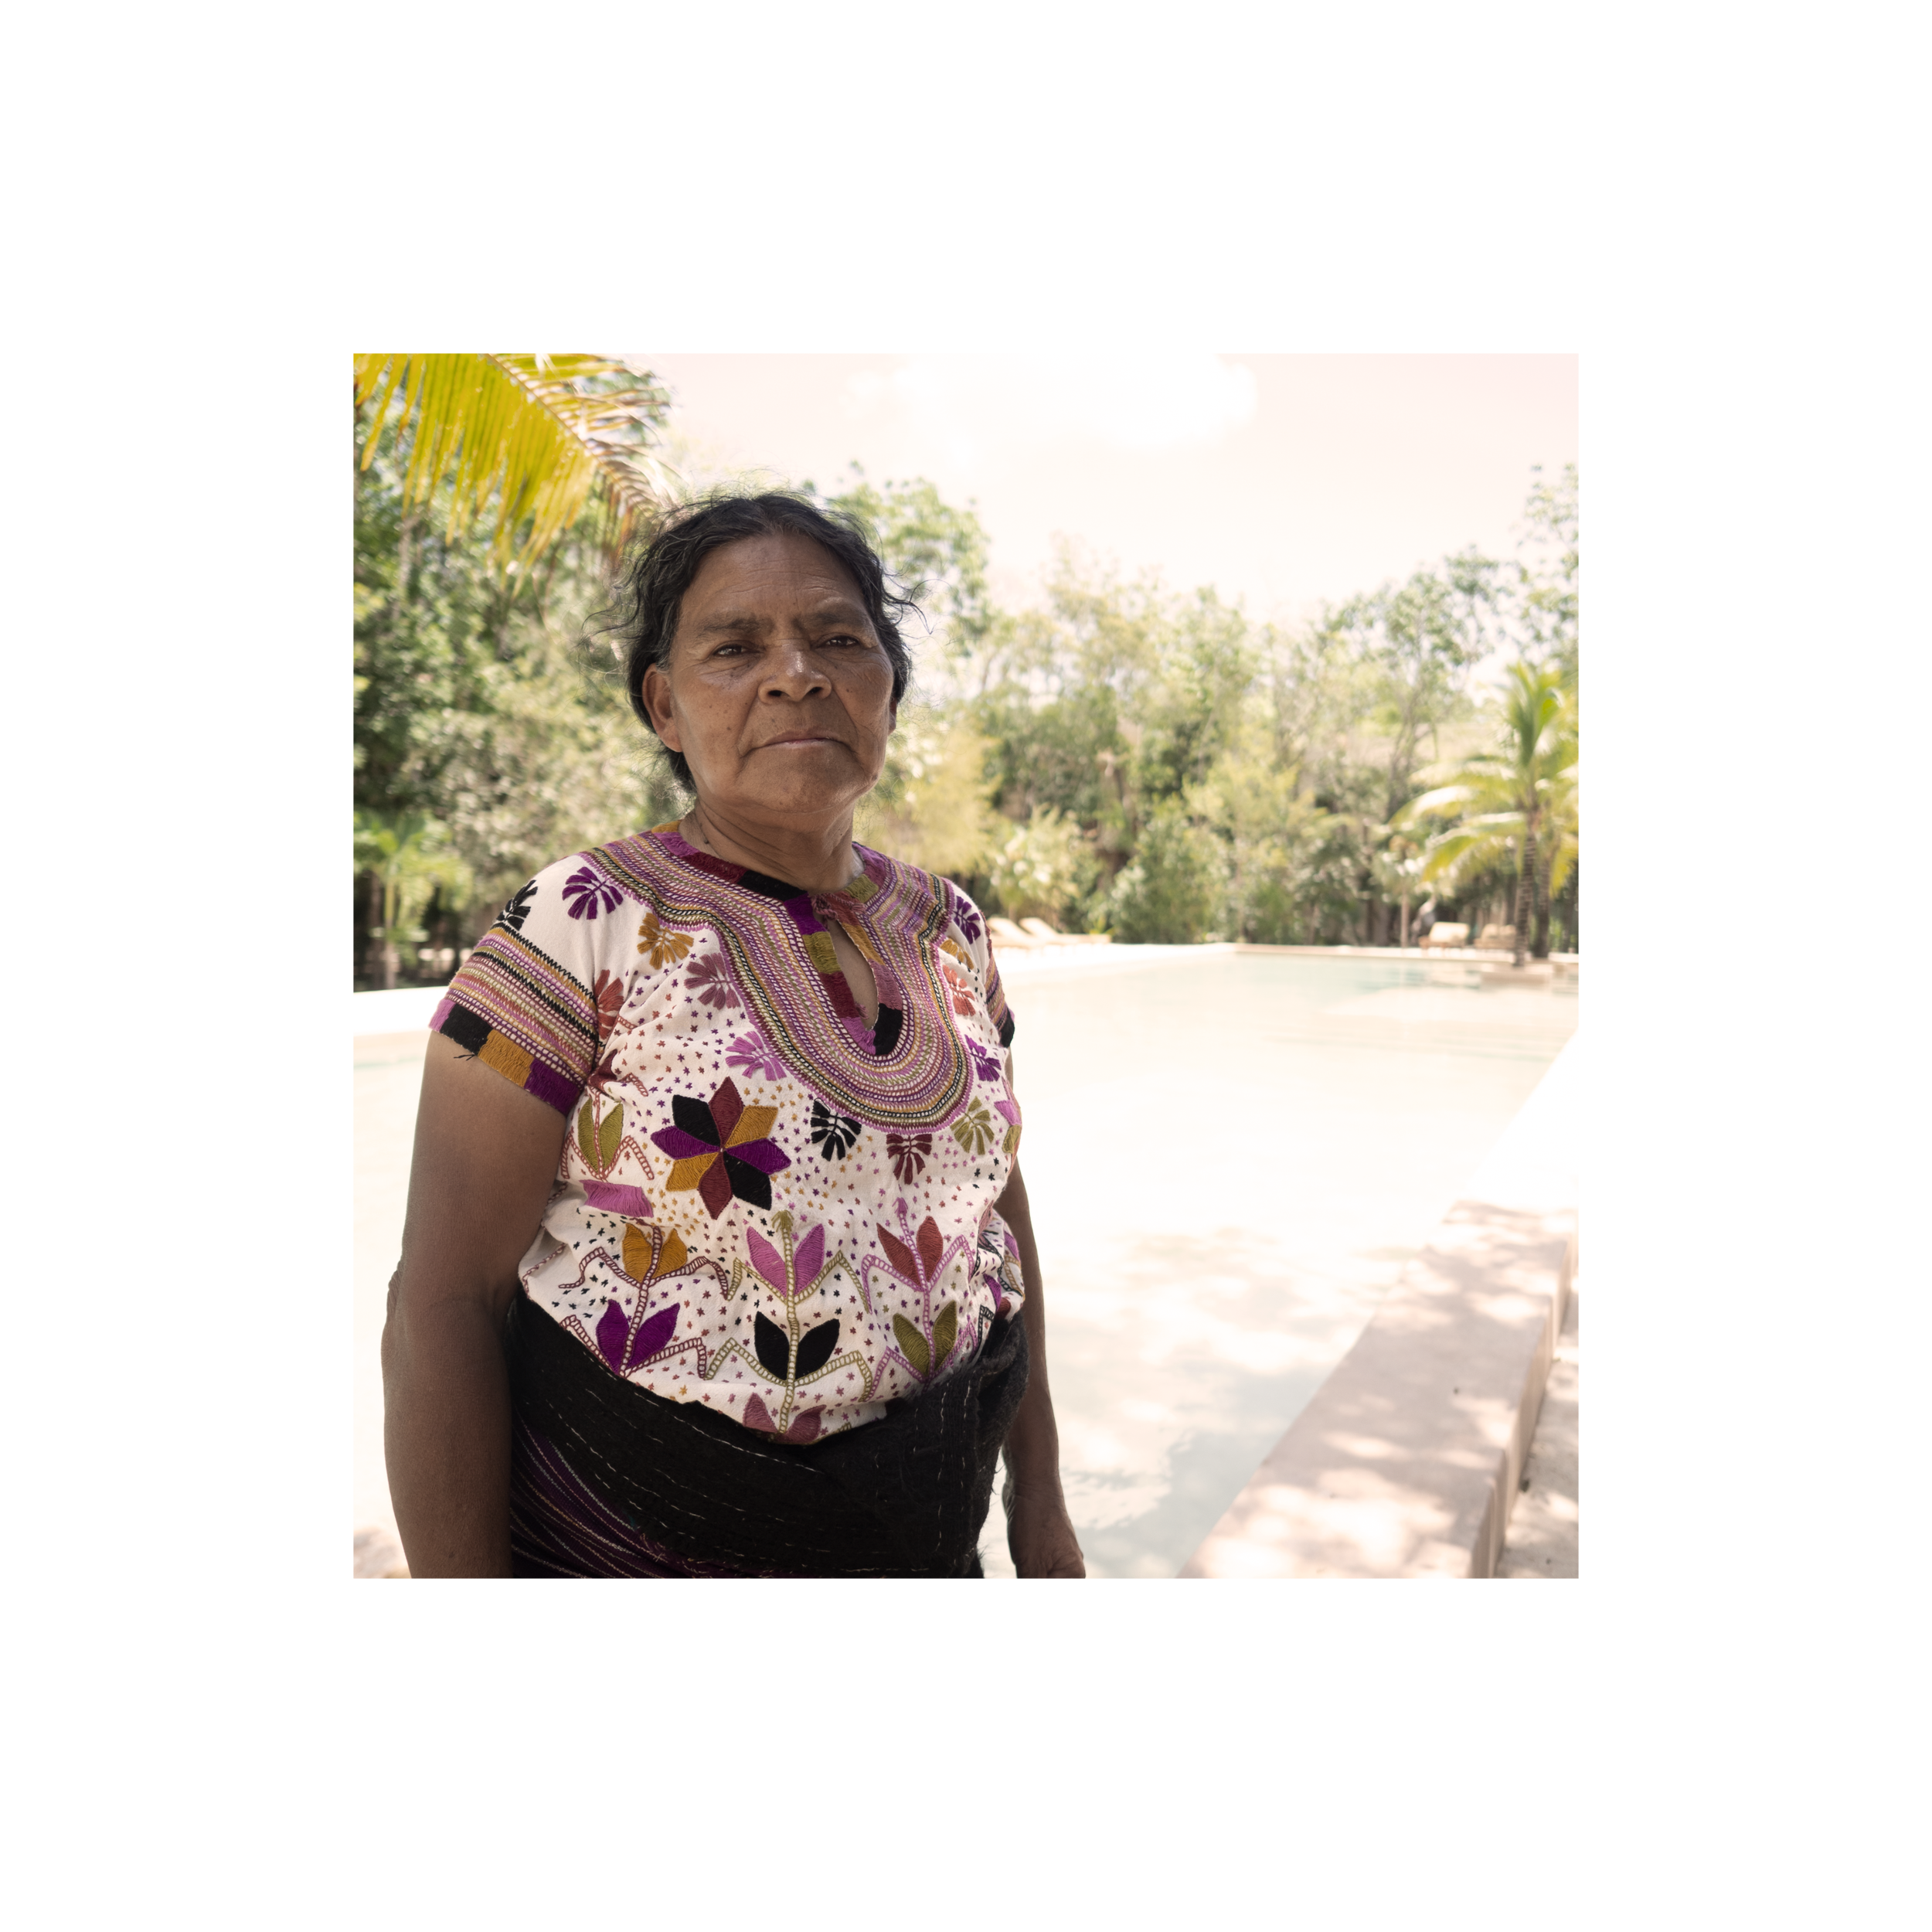 Maruch Mendez  - We all know her as Maruch, she has profound roots that had been nourished by wisdom and ancestral knowledge linked to healing. In her community they call her